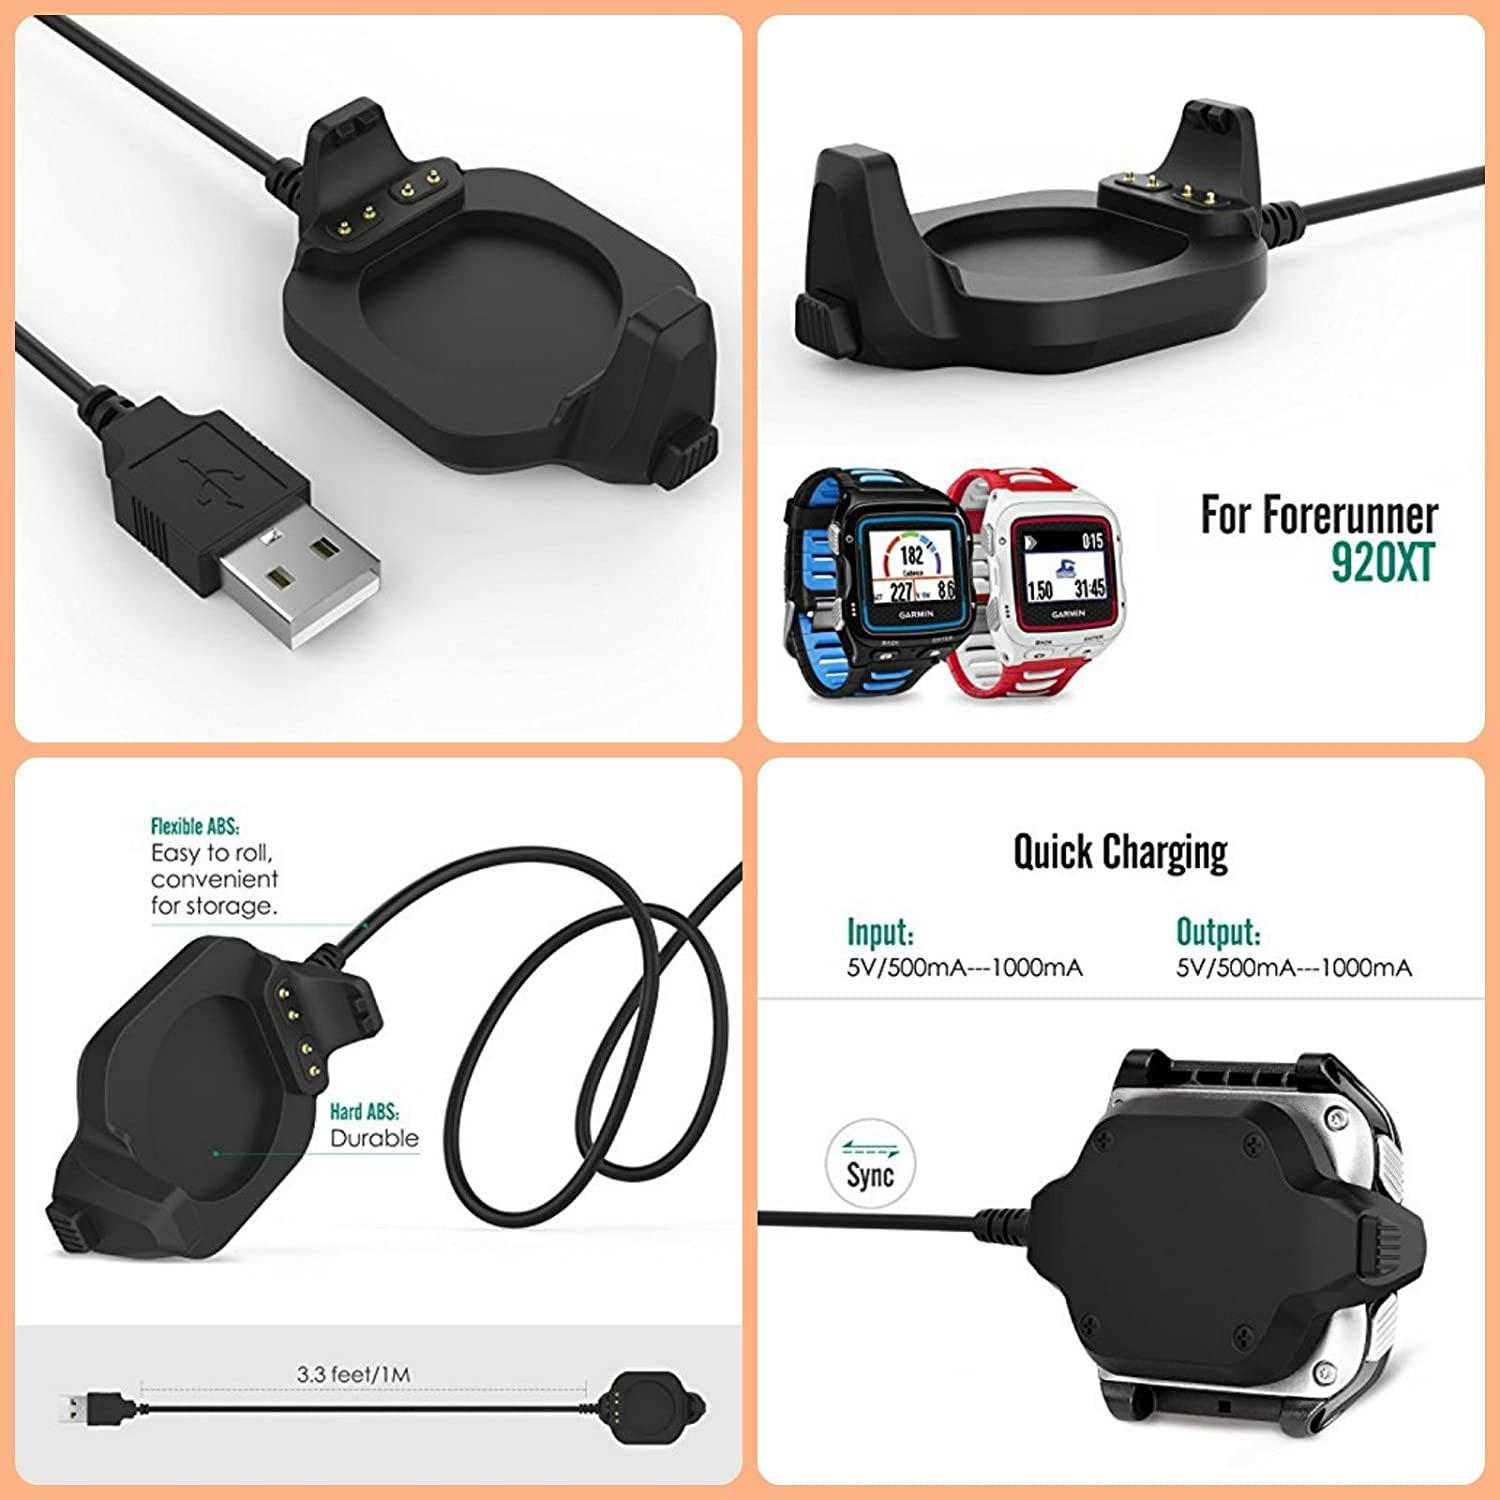 Black Charger Dock Compatible for Garmin Forerunner 920XT BESTeck USB Data Sync Charge Cradle Dock Charger with 1M Charging Cable for Garmin Forerunner 920XT Smart Watch